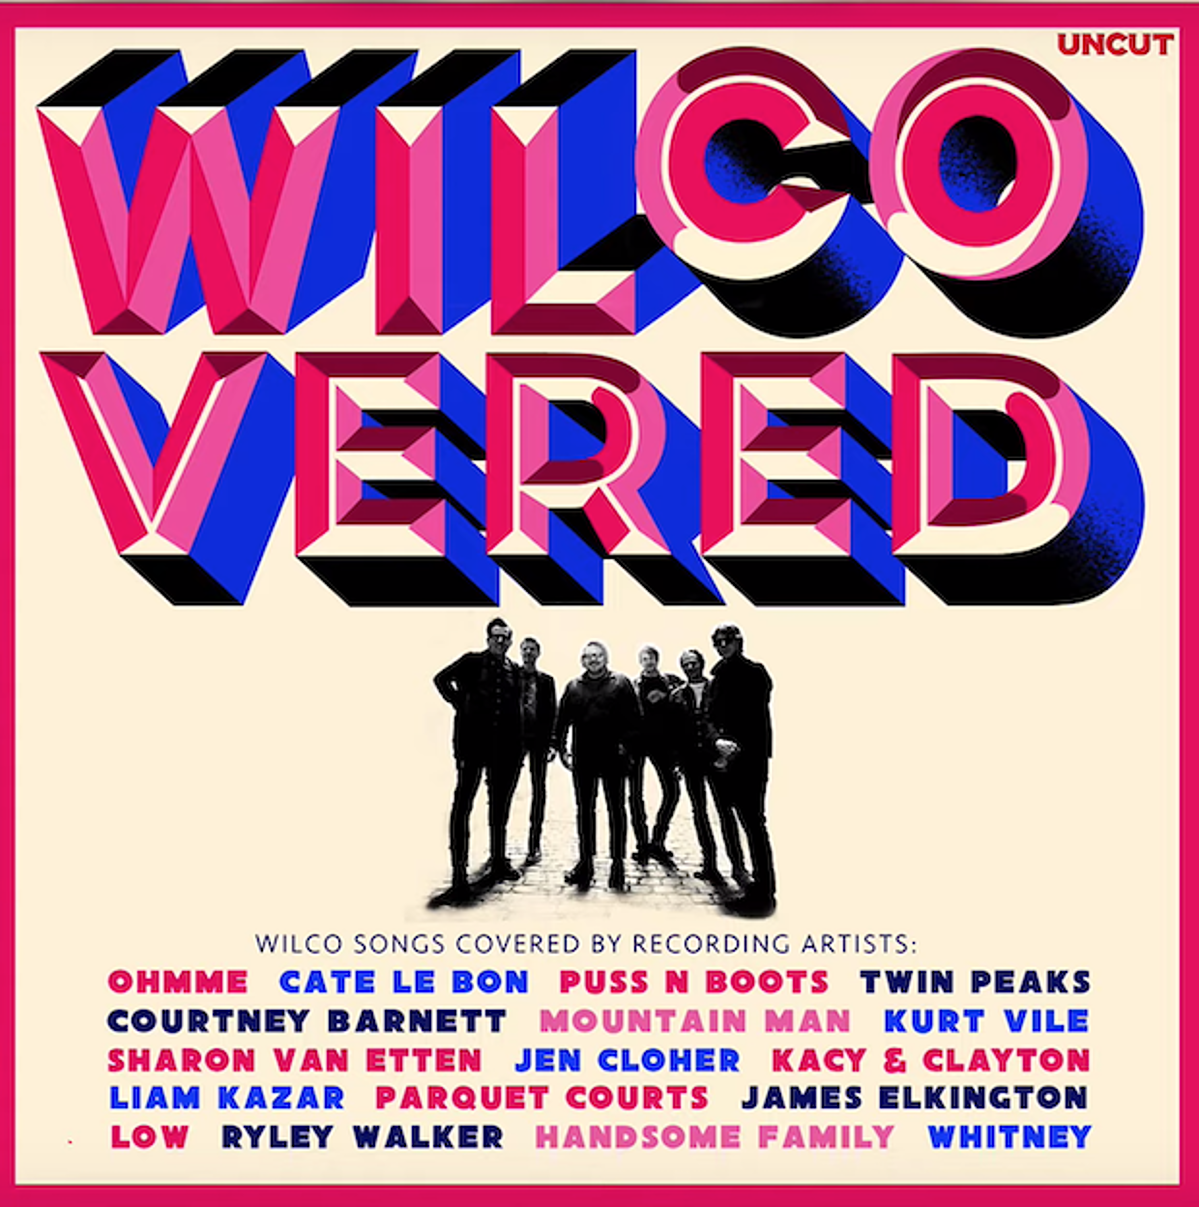 """Courtney Barnett, Kurt Vile, Low, more cover Wilco on new comp (listen to Cate Le Bon's """"Company in My Back"""")"""